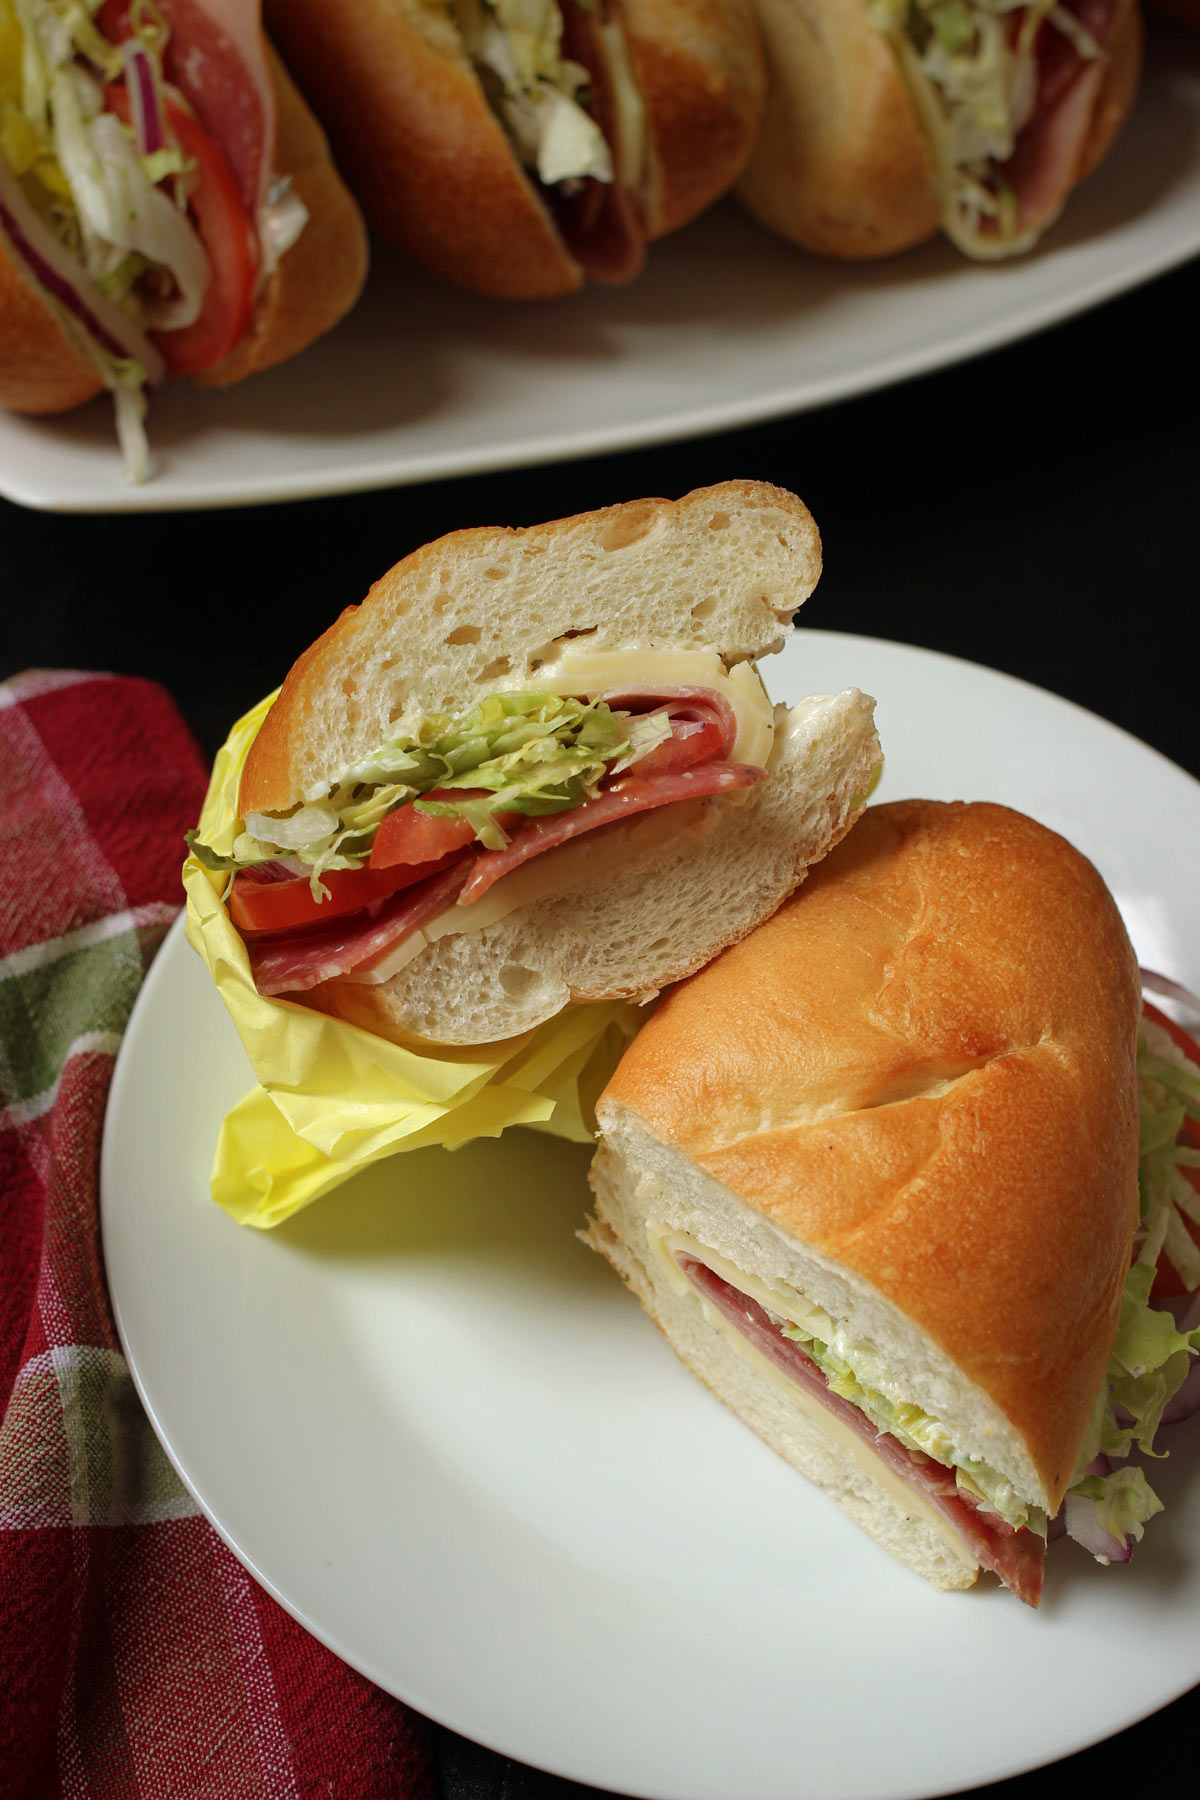 Italian sub sandwich cut open and two halves on a plate.